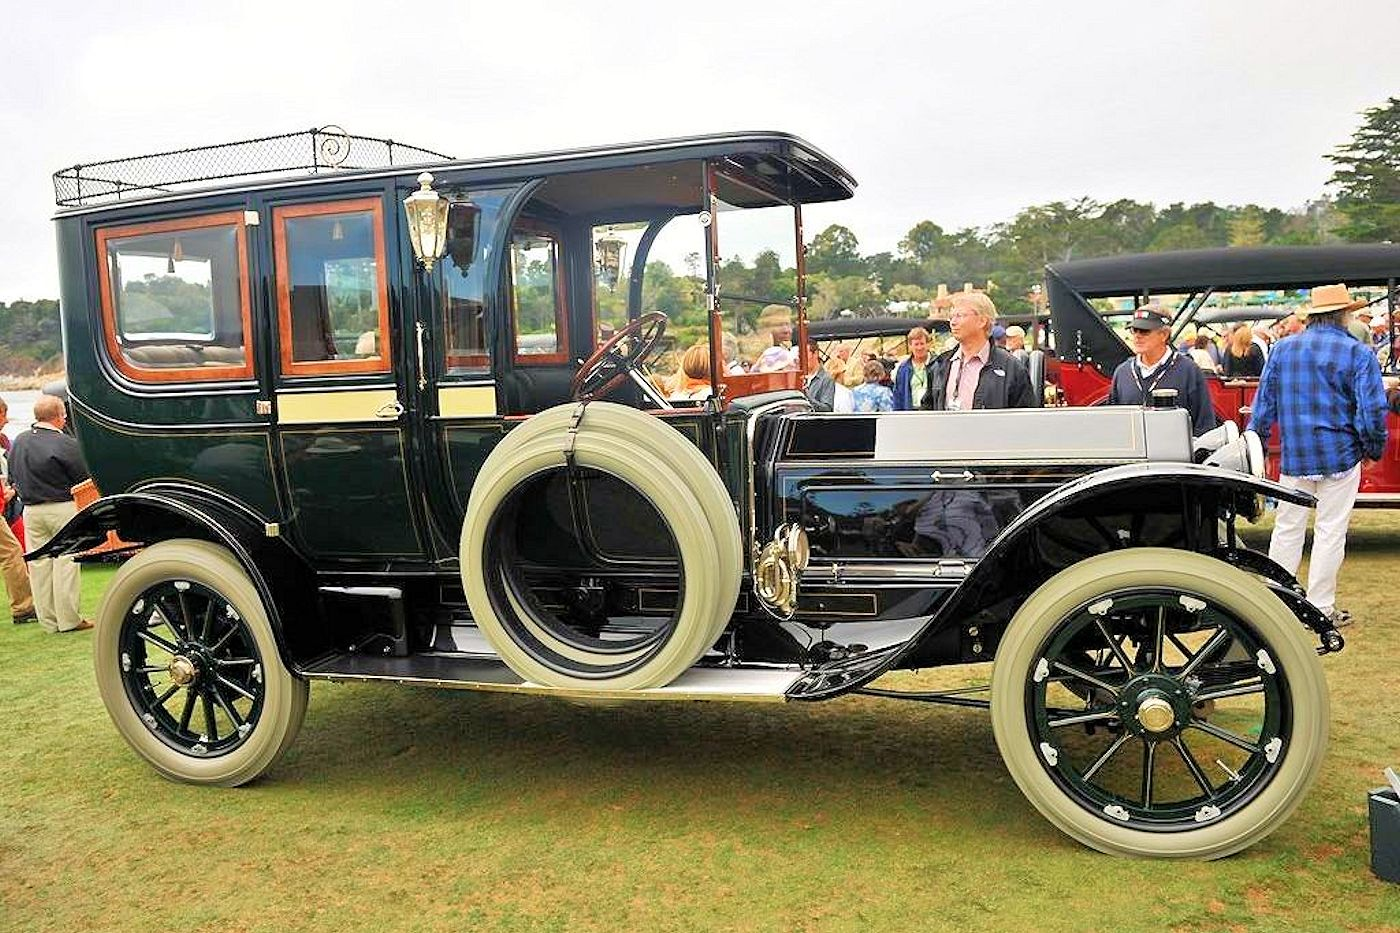 1913 Peerless - Laidlaw Antique Auto Retoration